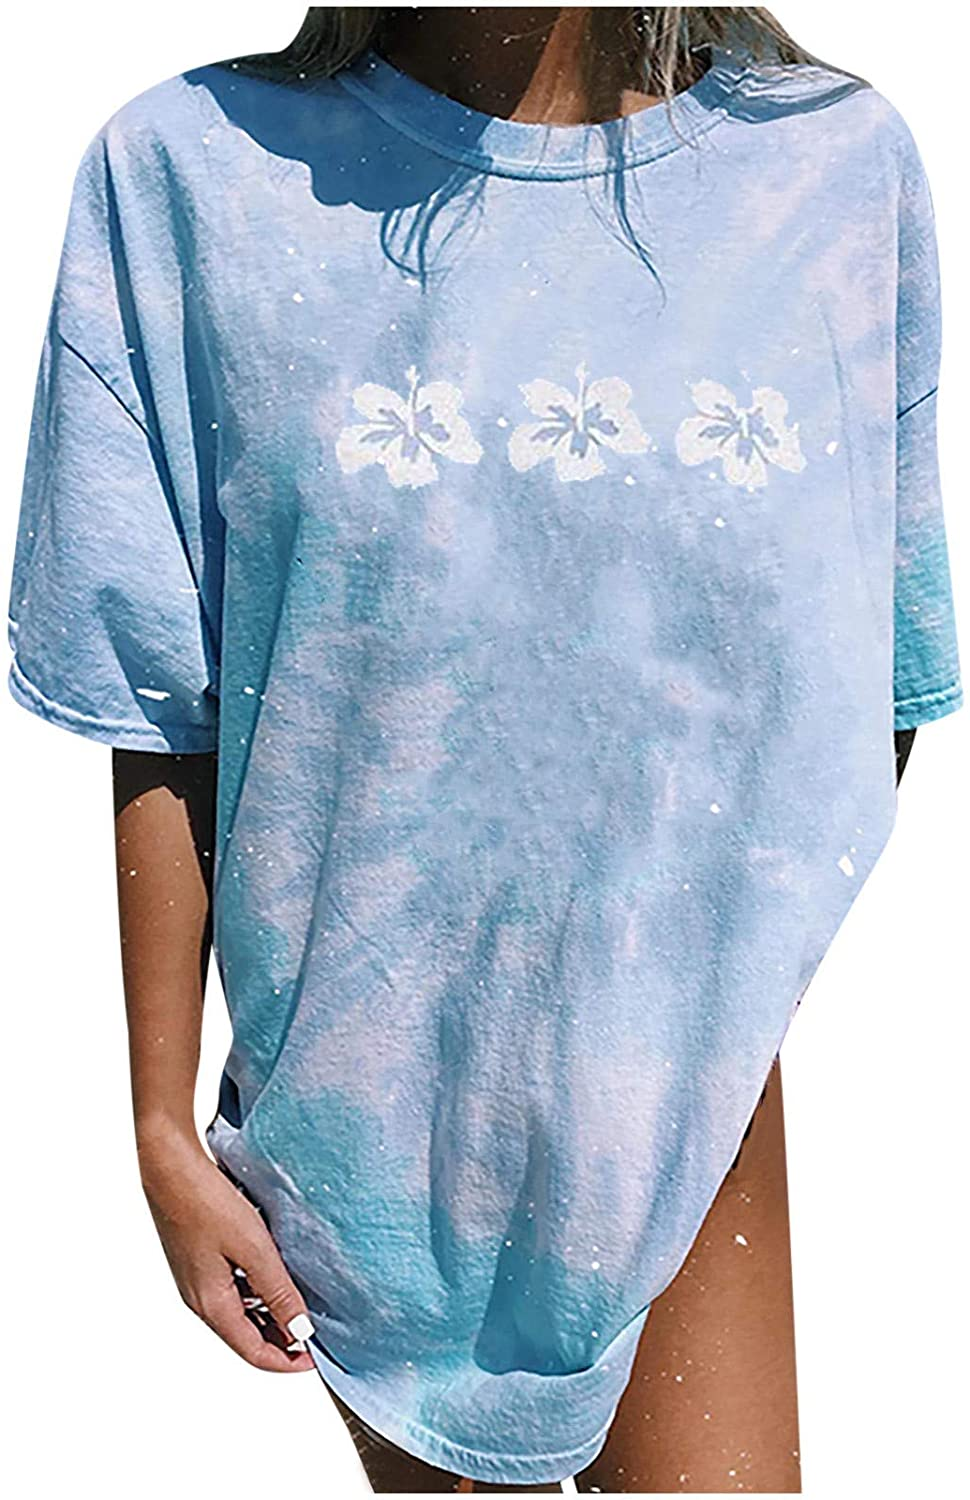 Women's Summer Vintage Sun and Moon Printed Tie-dye T-Shirt Casual Short Sleeve Tops Loose Plus Size Blouses